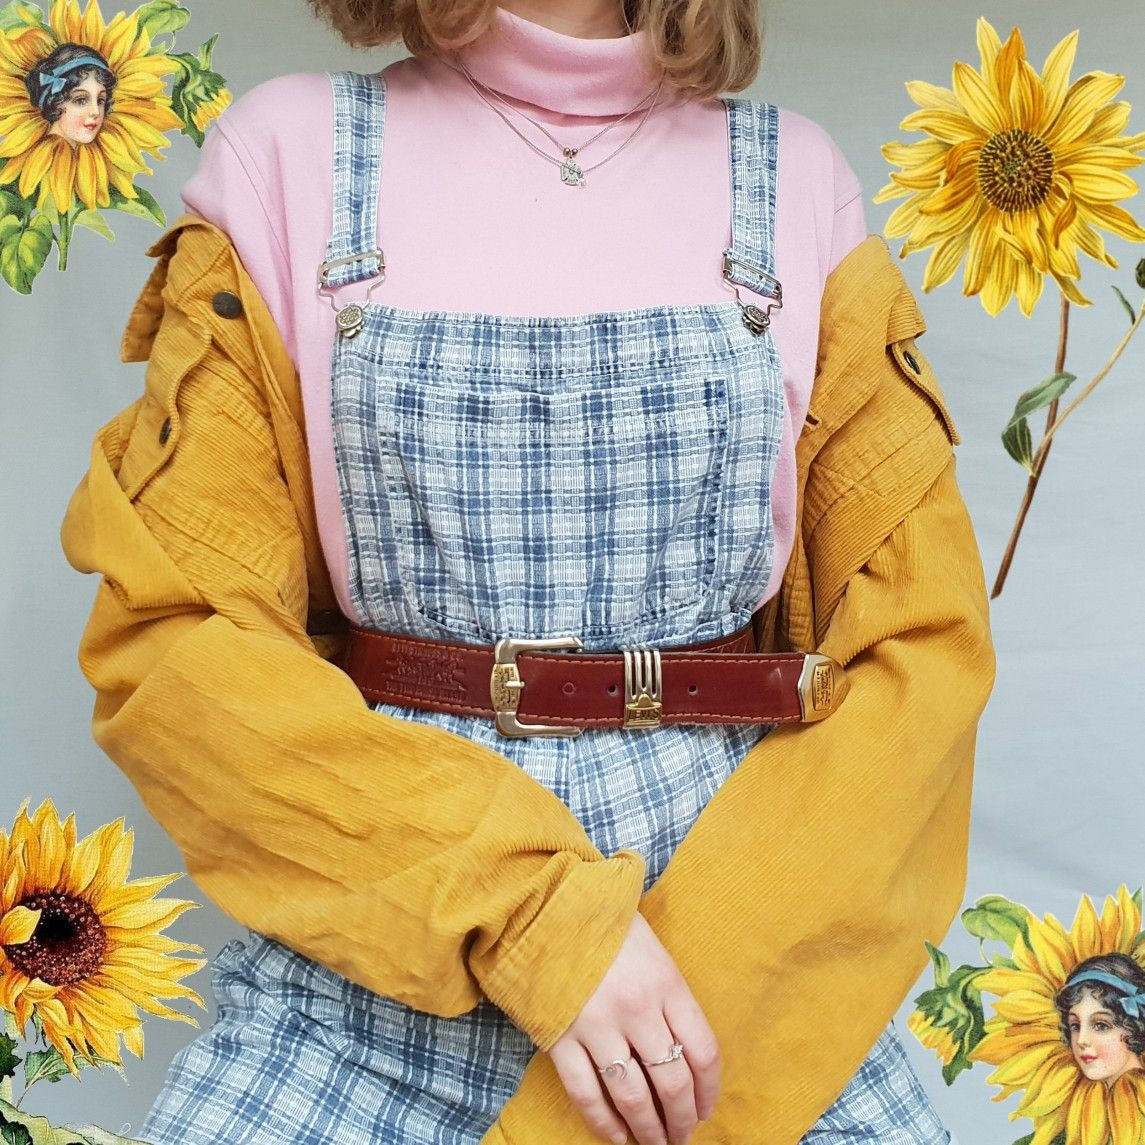 90s vintage outfit dubgarees muatard corduroy aesthetic ...